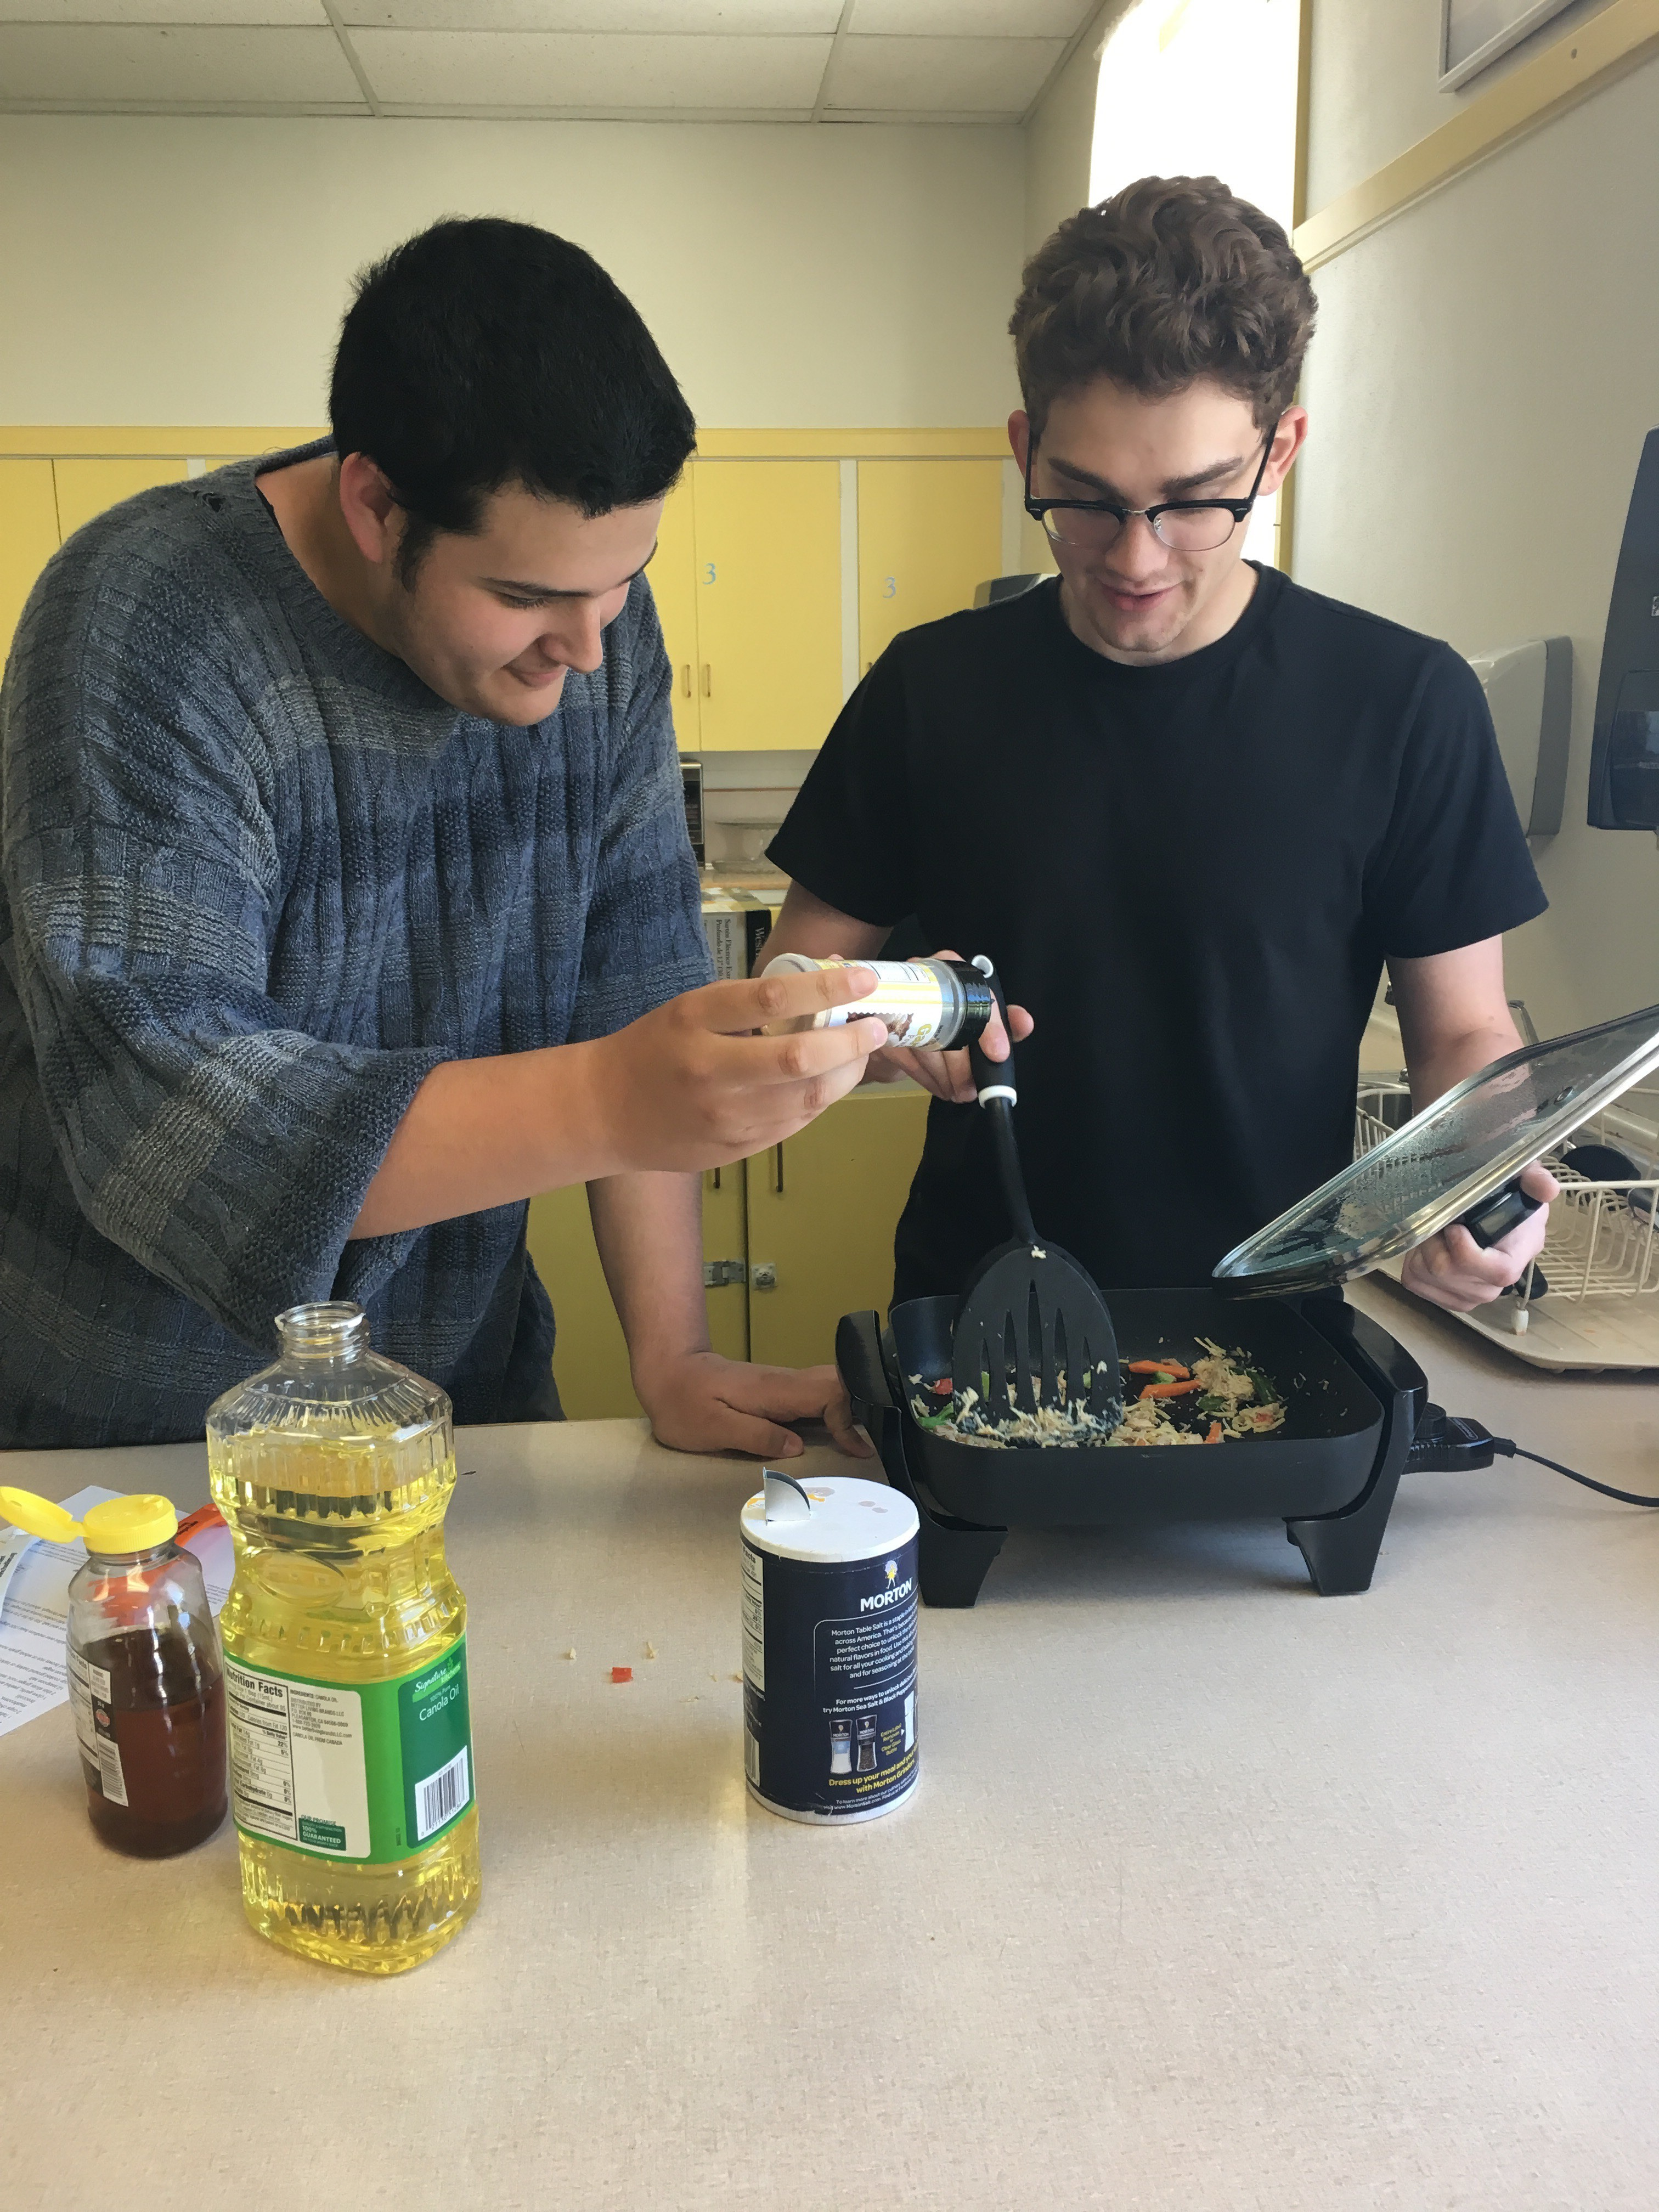 two teens cook using an electric skillet